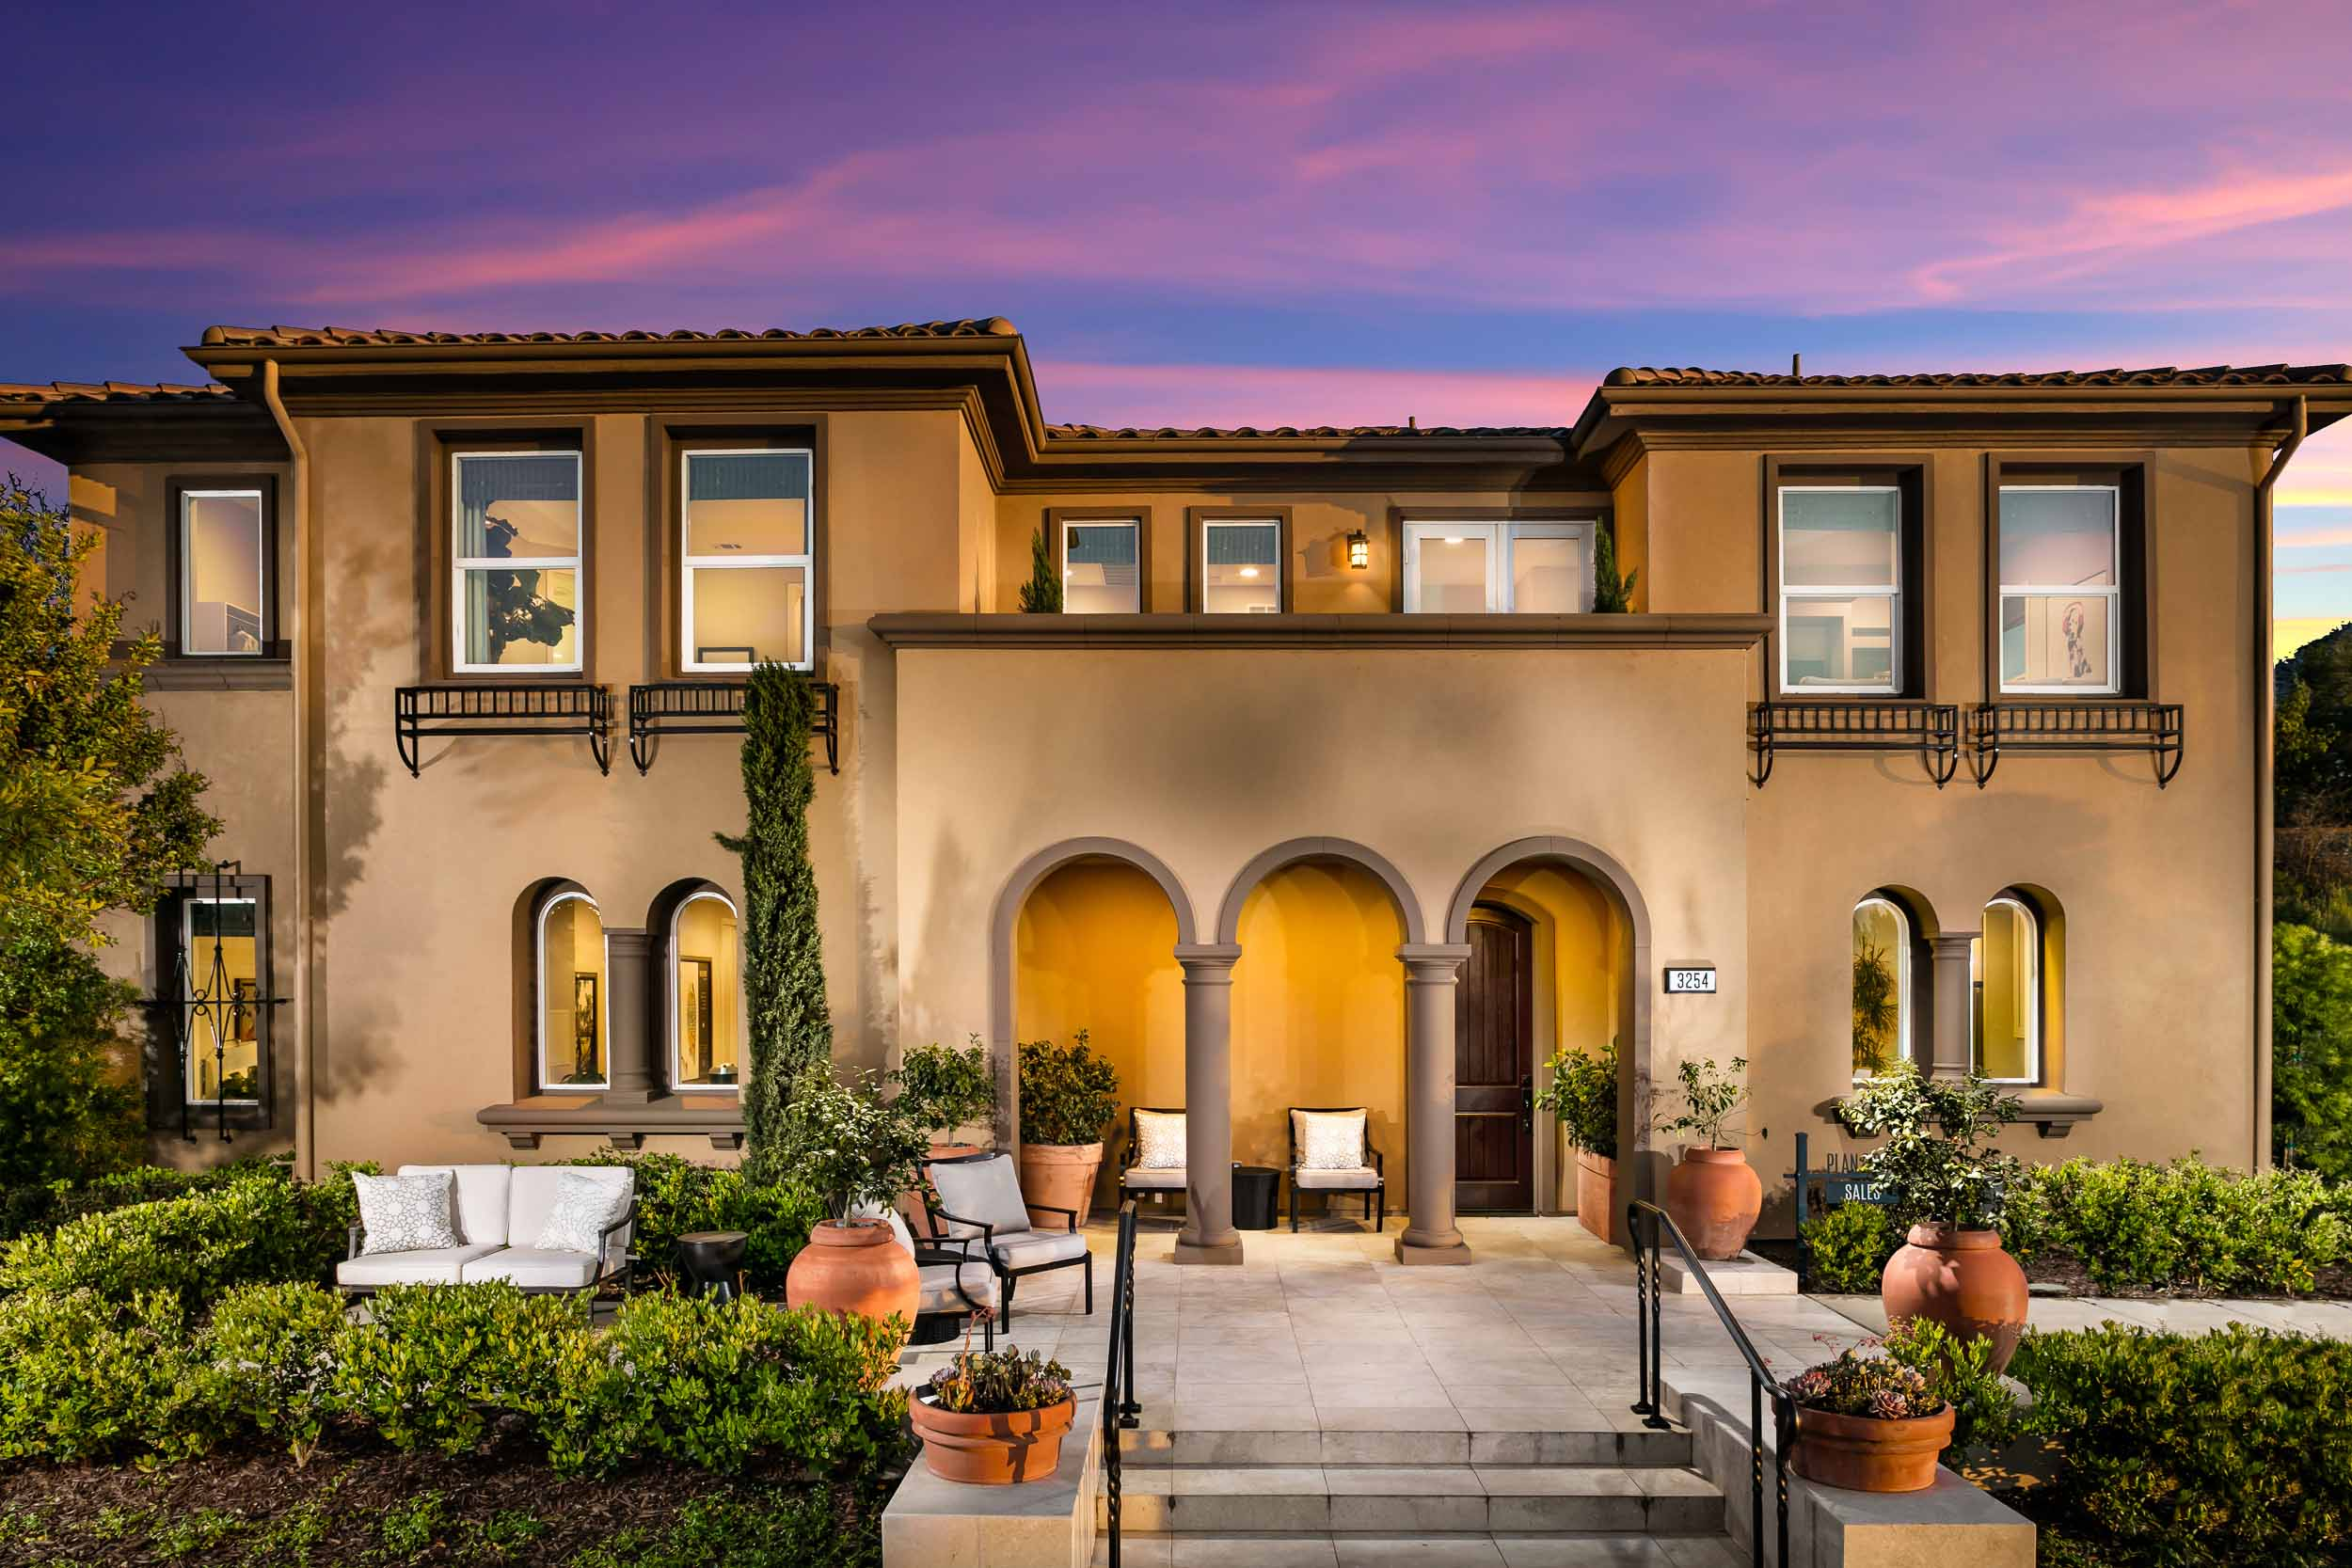 Mulberry at McKinley Village   | Sacramento, California    AWARDS   + 2017 Gold Nugget Award  for Best Single Family Detached Home Under 2,000 Sq. Ft.   + 2017 Gold Nugget Award of Merit  for Masterplanned Residential Housing Community of the Year